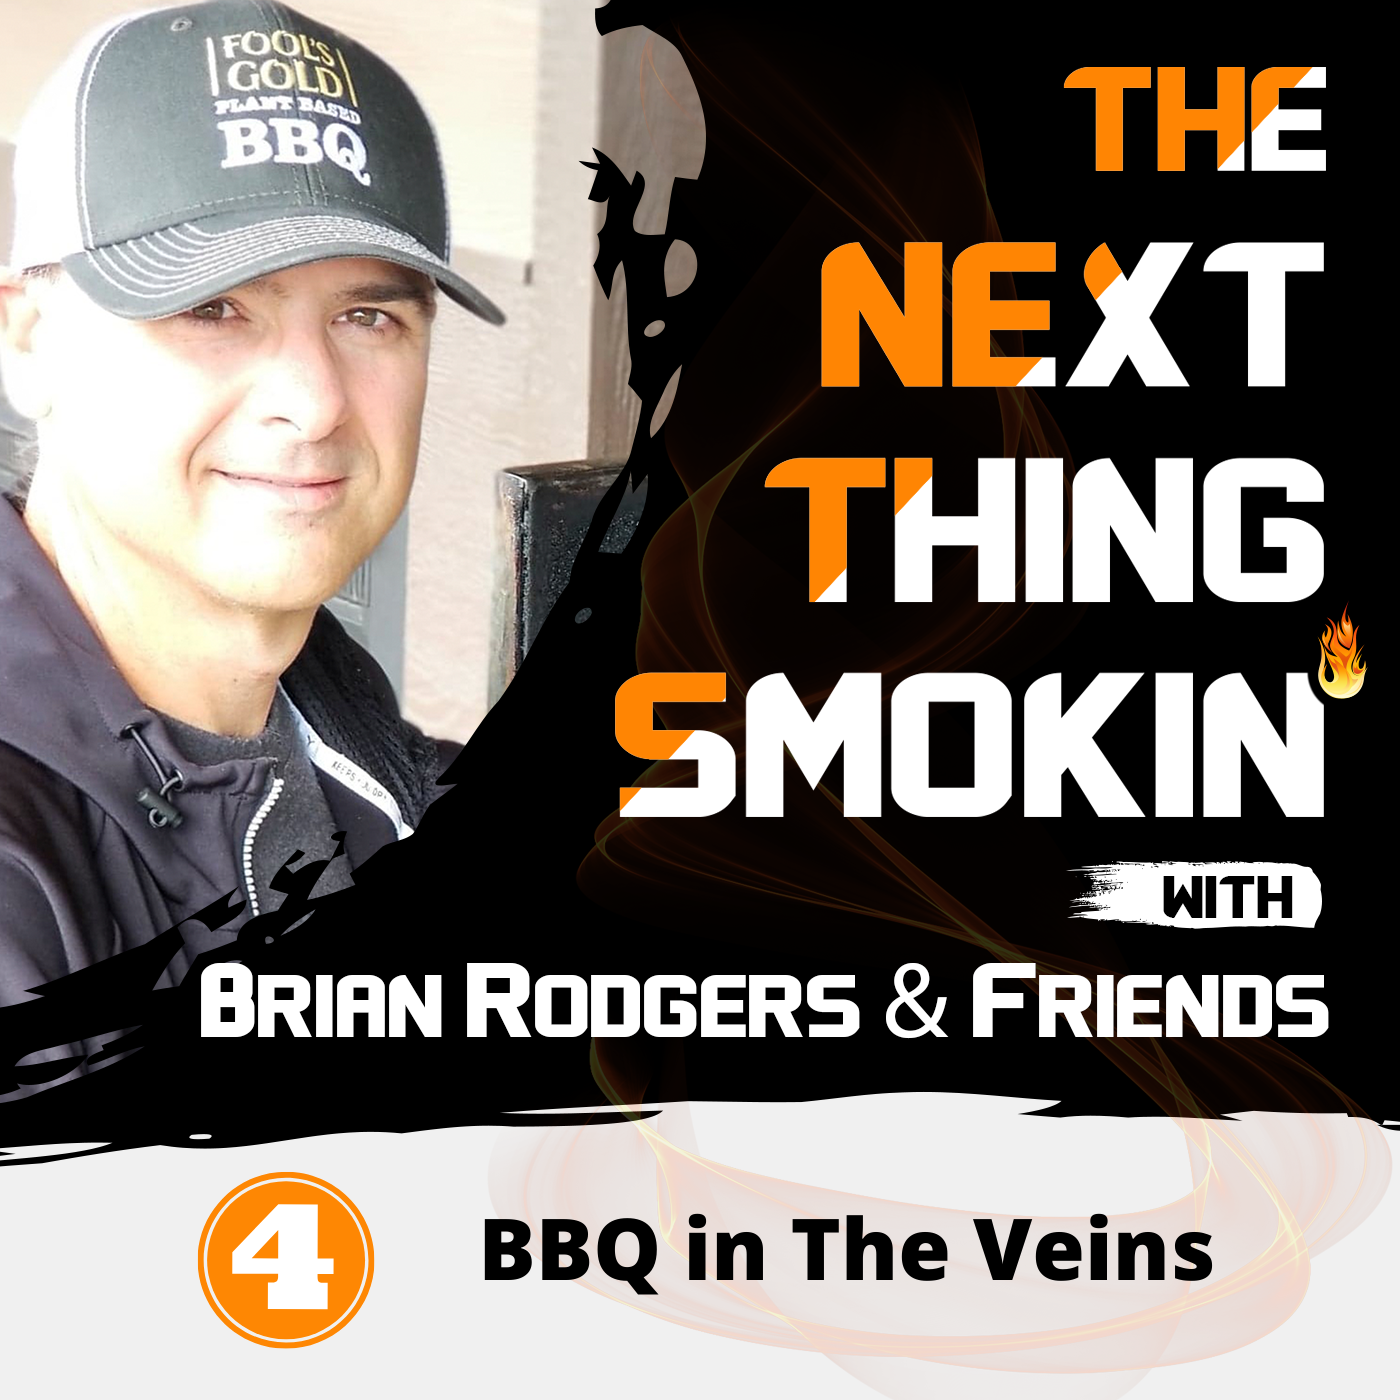 BBQ in The Veins